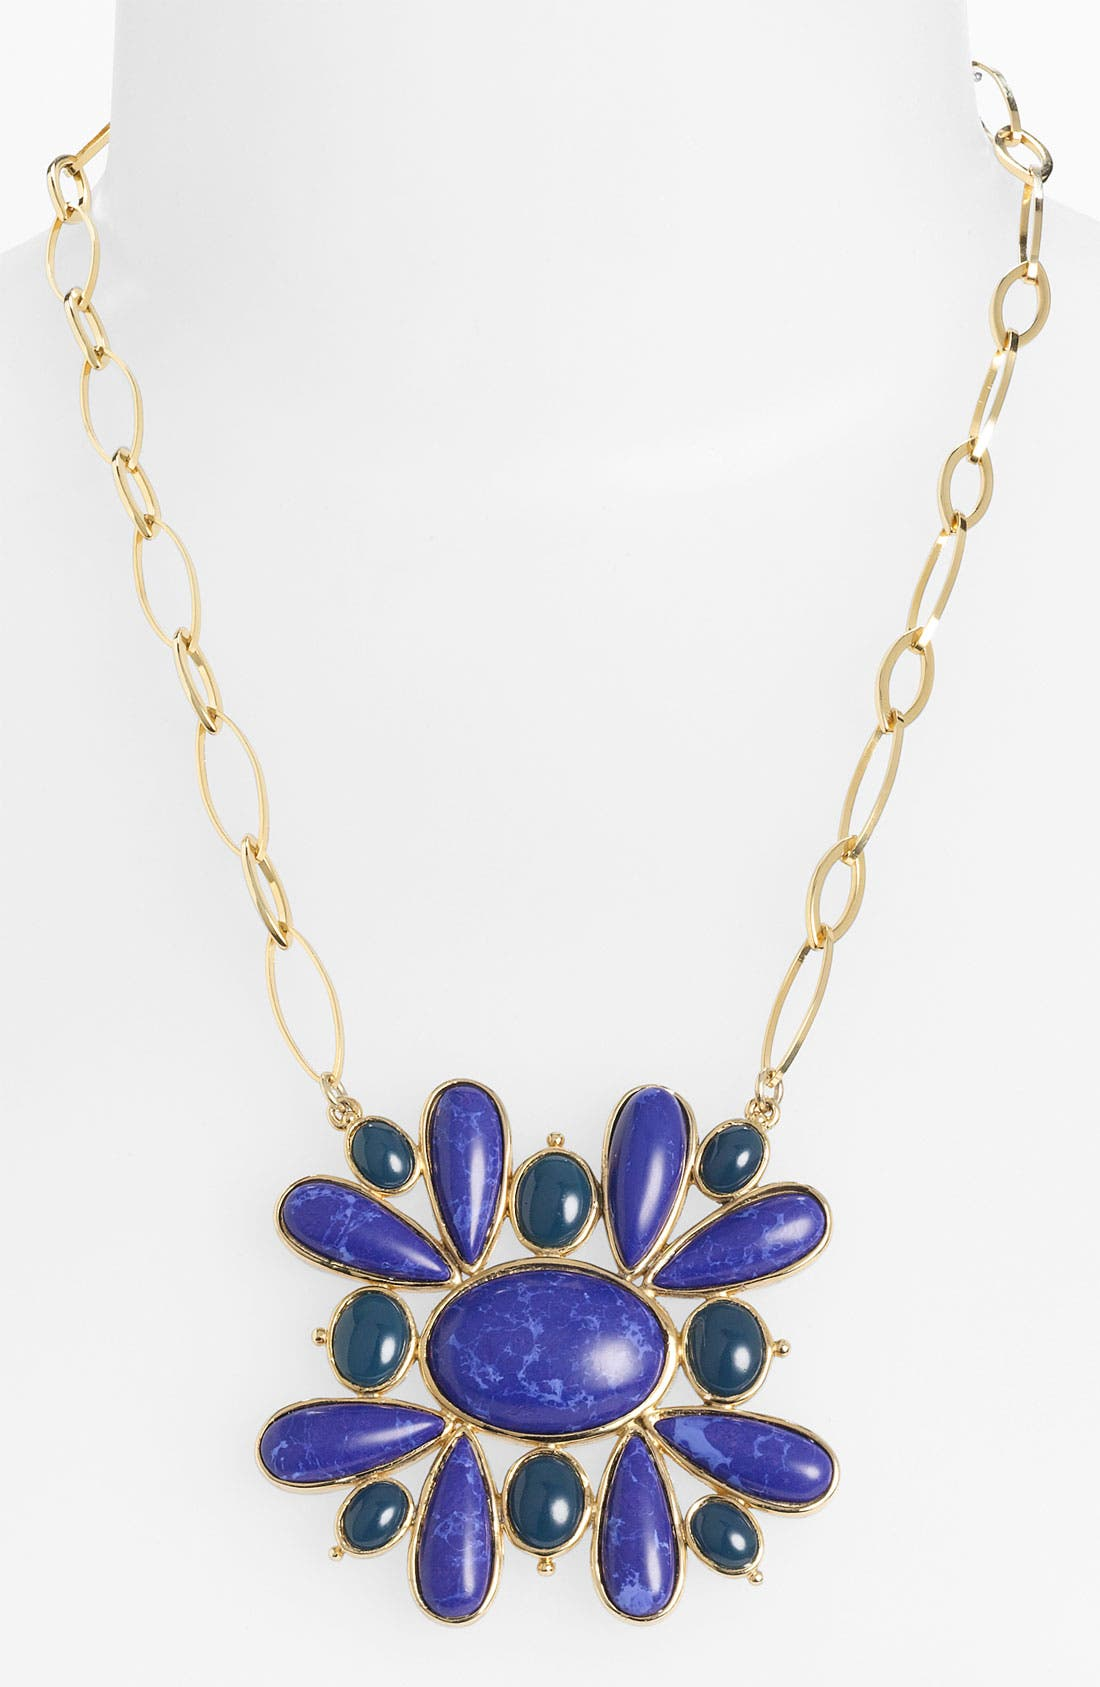 NORDSTROM, 'Lapis of Luxury' Statement Pendant Necklace, Main thumbnail 1, color, 400